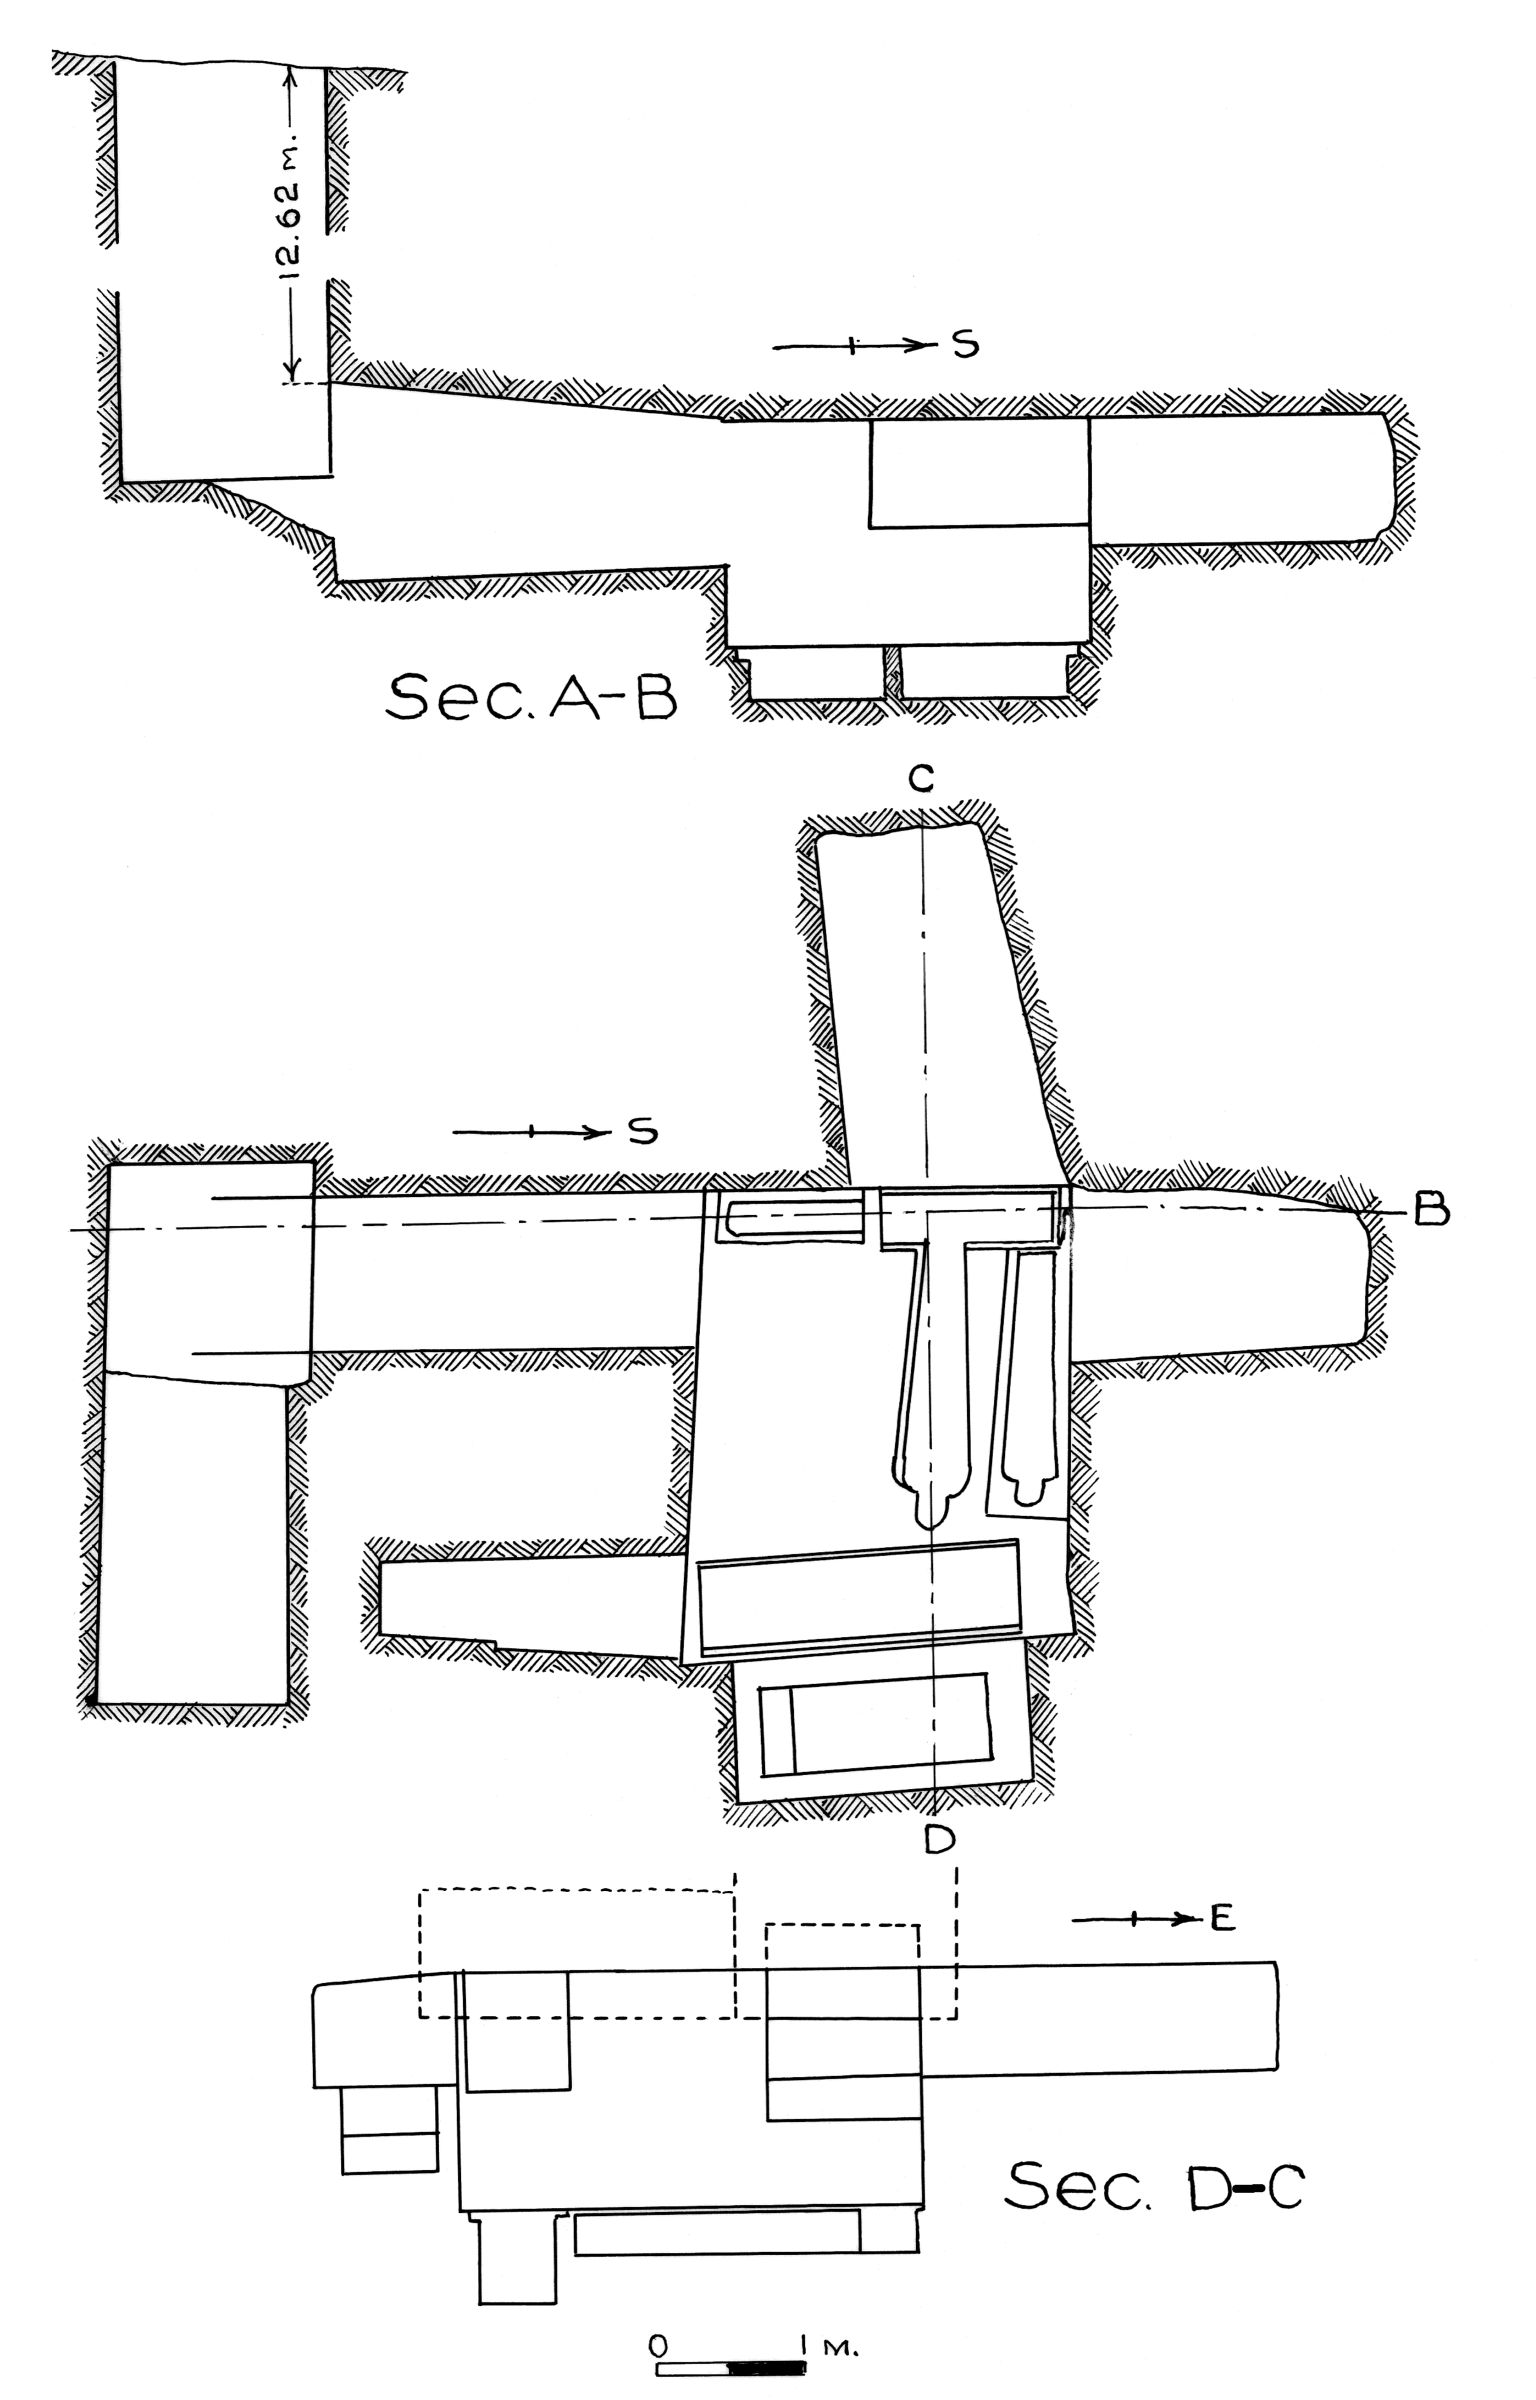 Maps and plans: G 7779, Shaft B